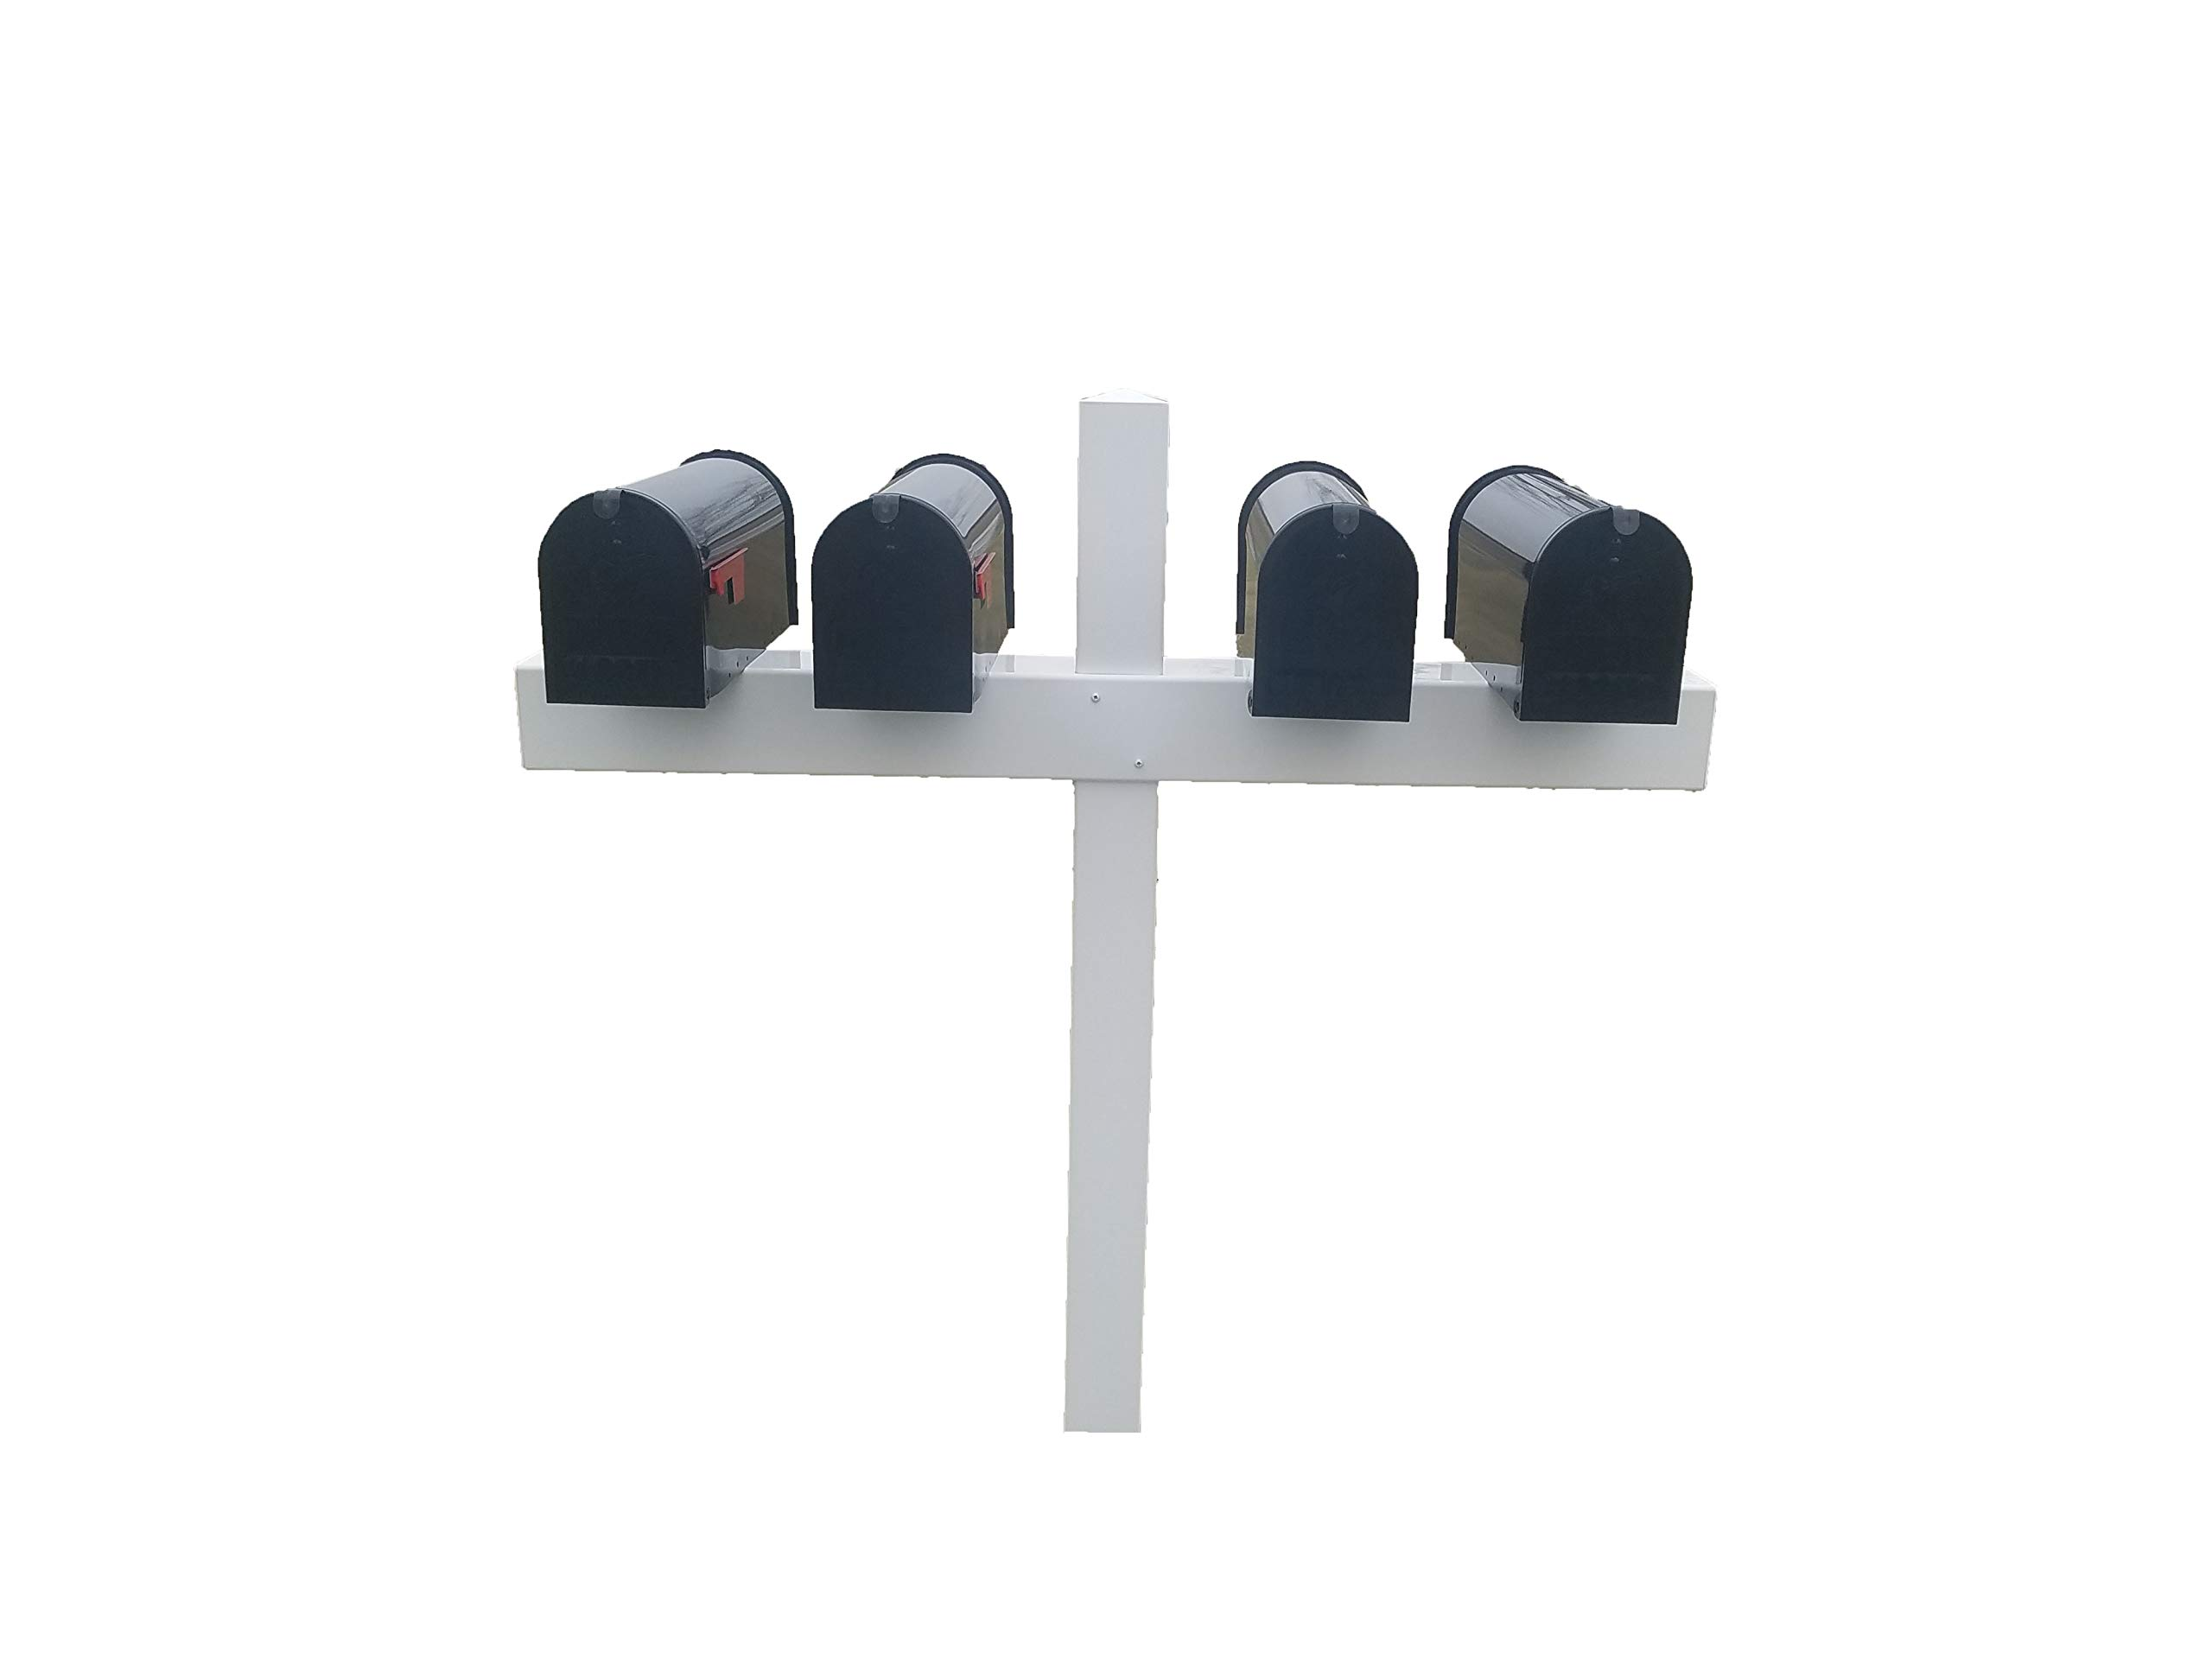 Handy Post for 4 Mailboxes, 54-in x 54-in, White, Vinyl Sleeve by Handy Post